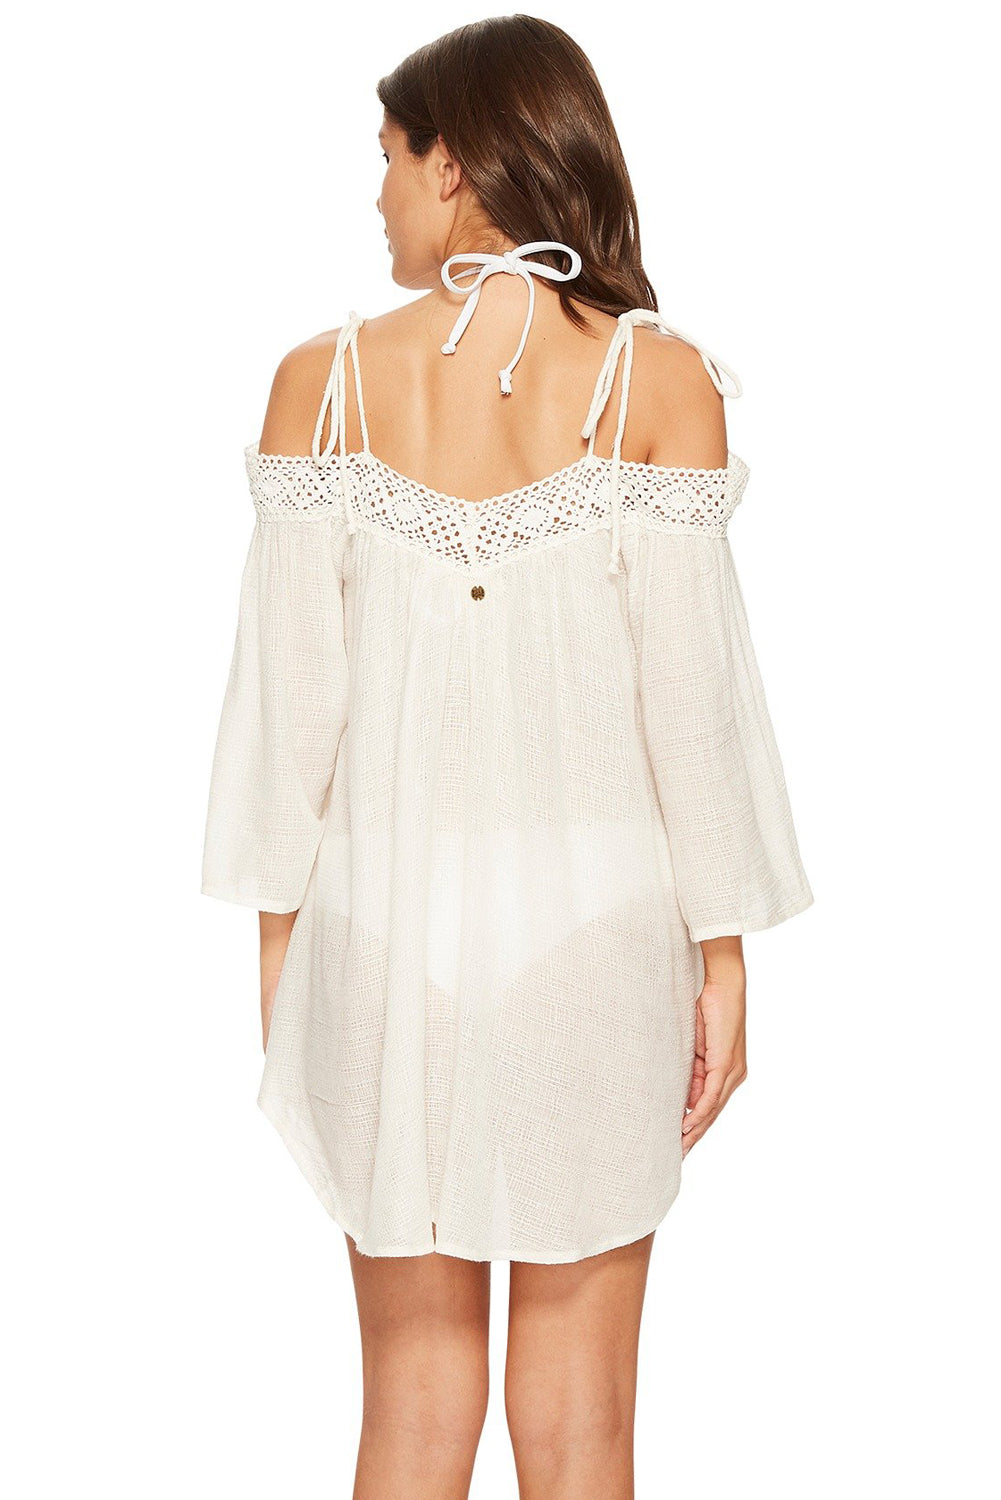 Her White Summer Breeze Cover-up Crochet Off-the-shoulder Beachwear